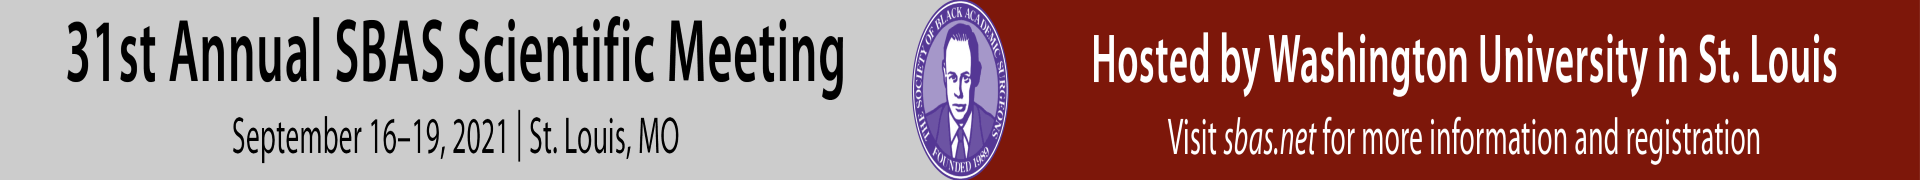 31st SBAS Annual Meeting Event Banner